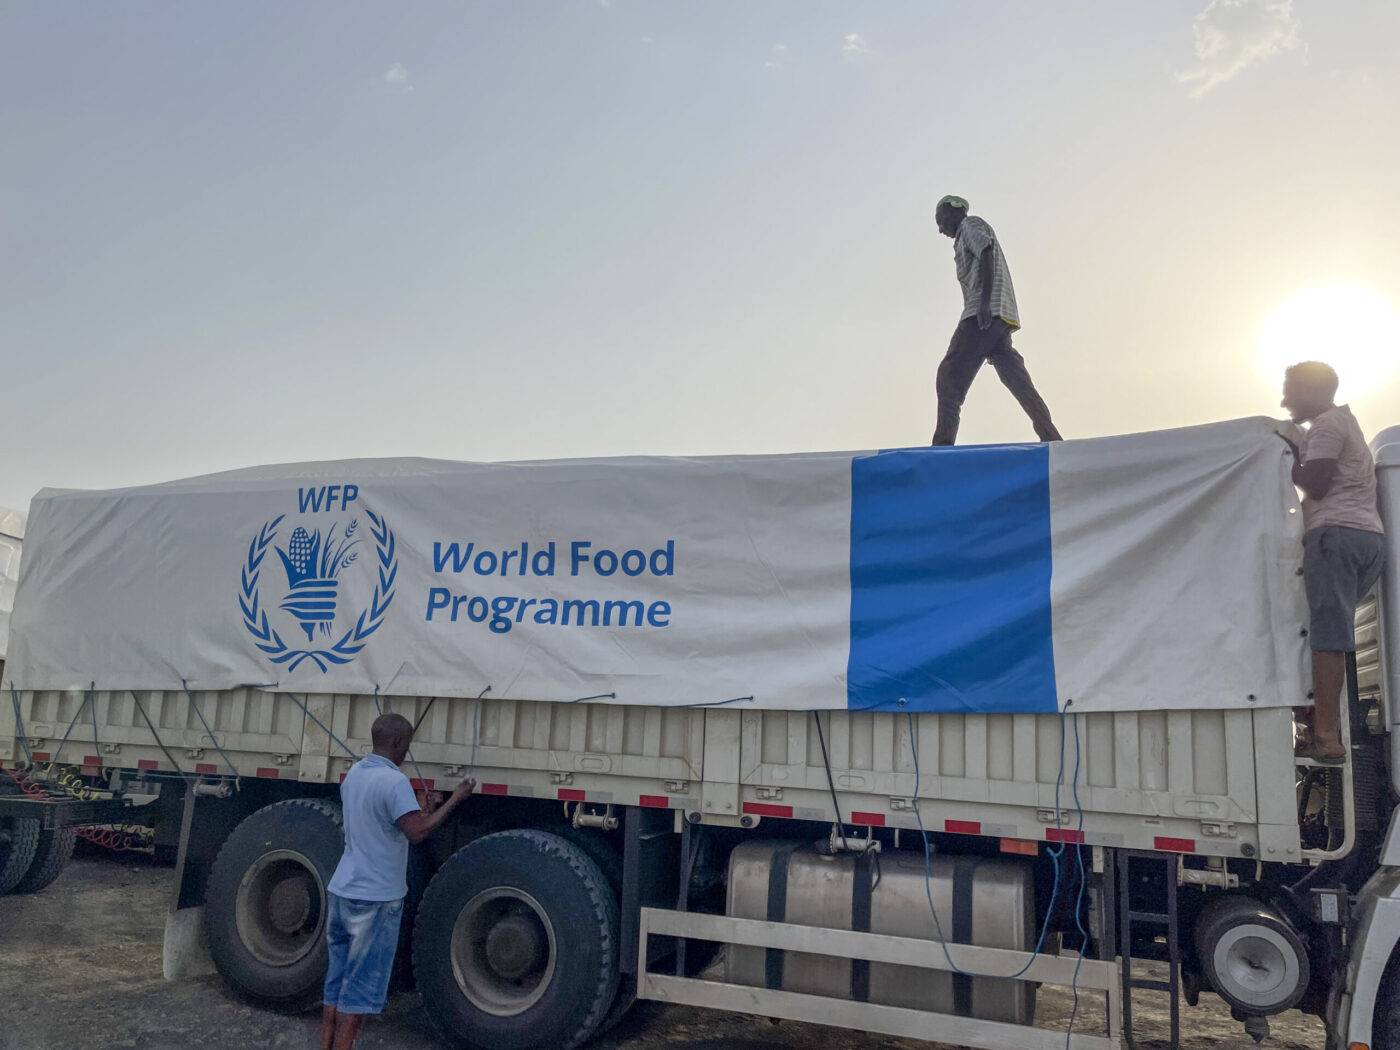 man standing on WFP truck